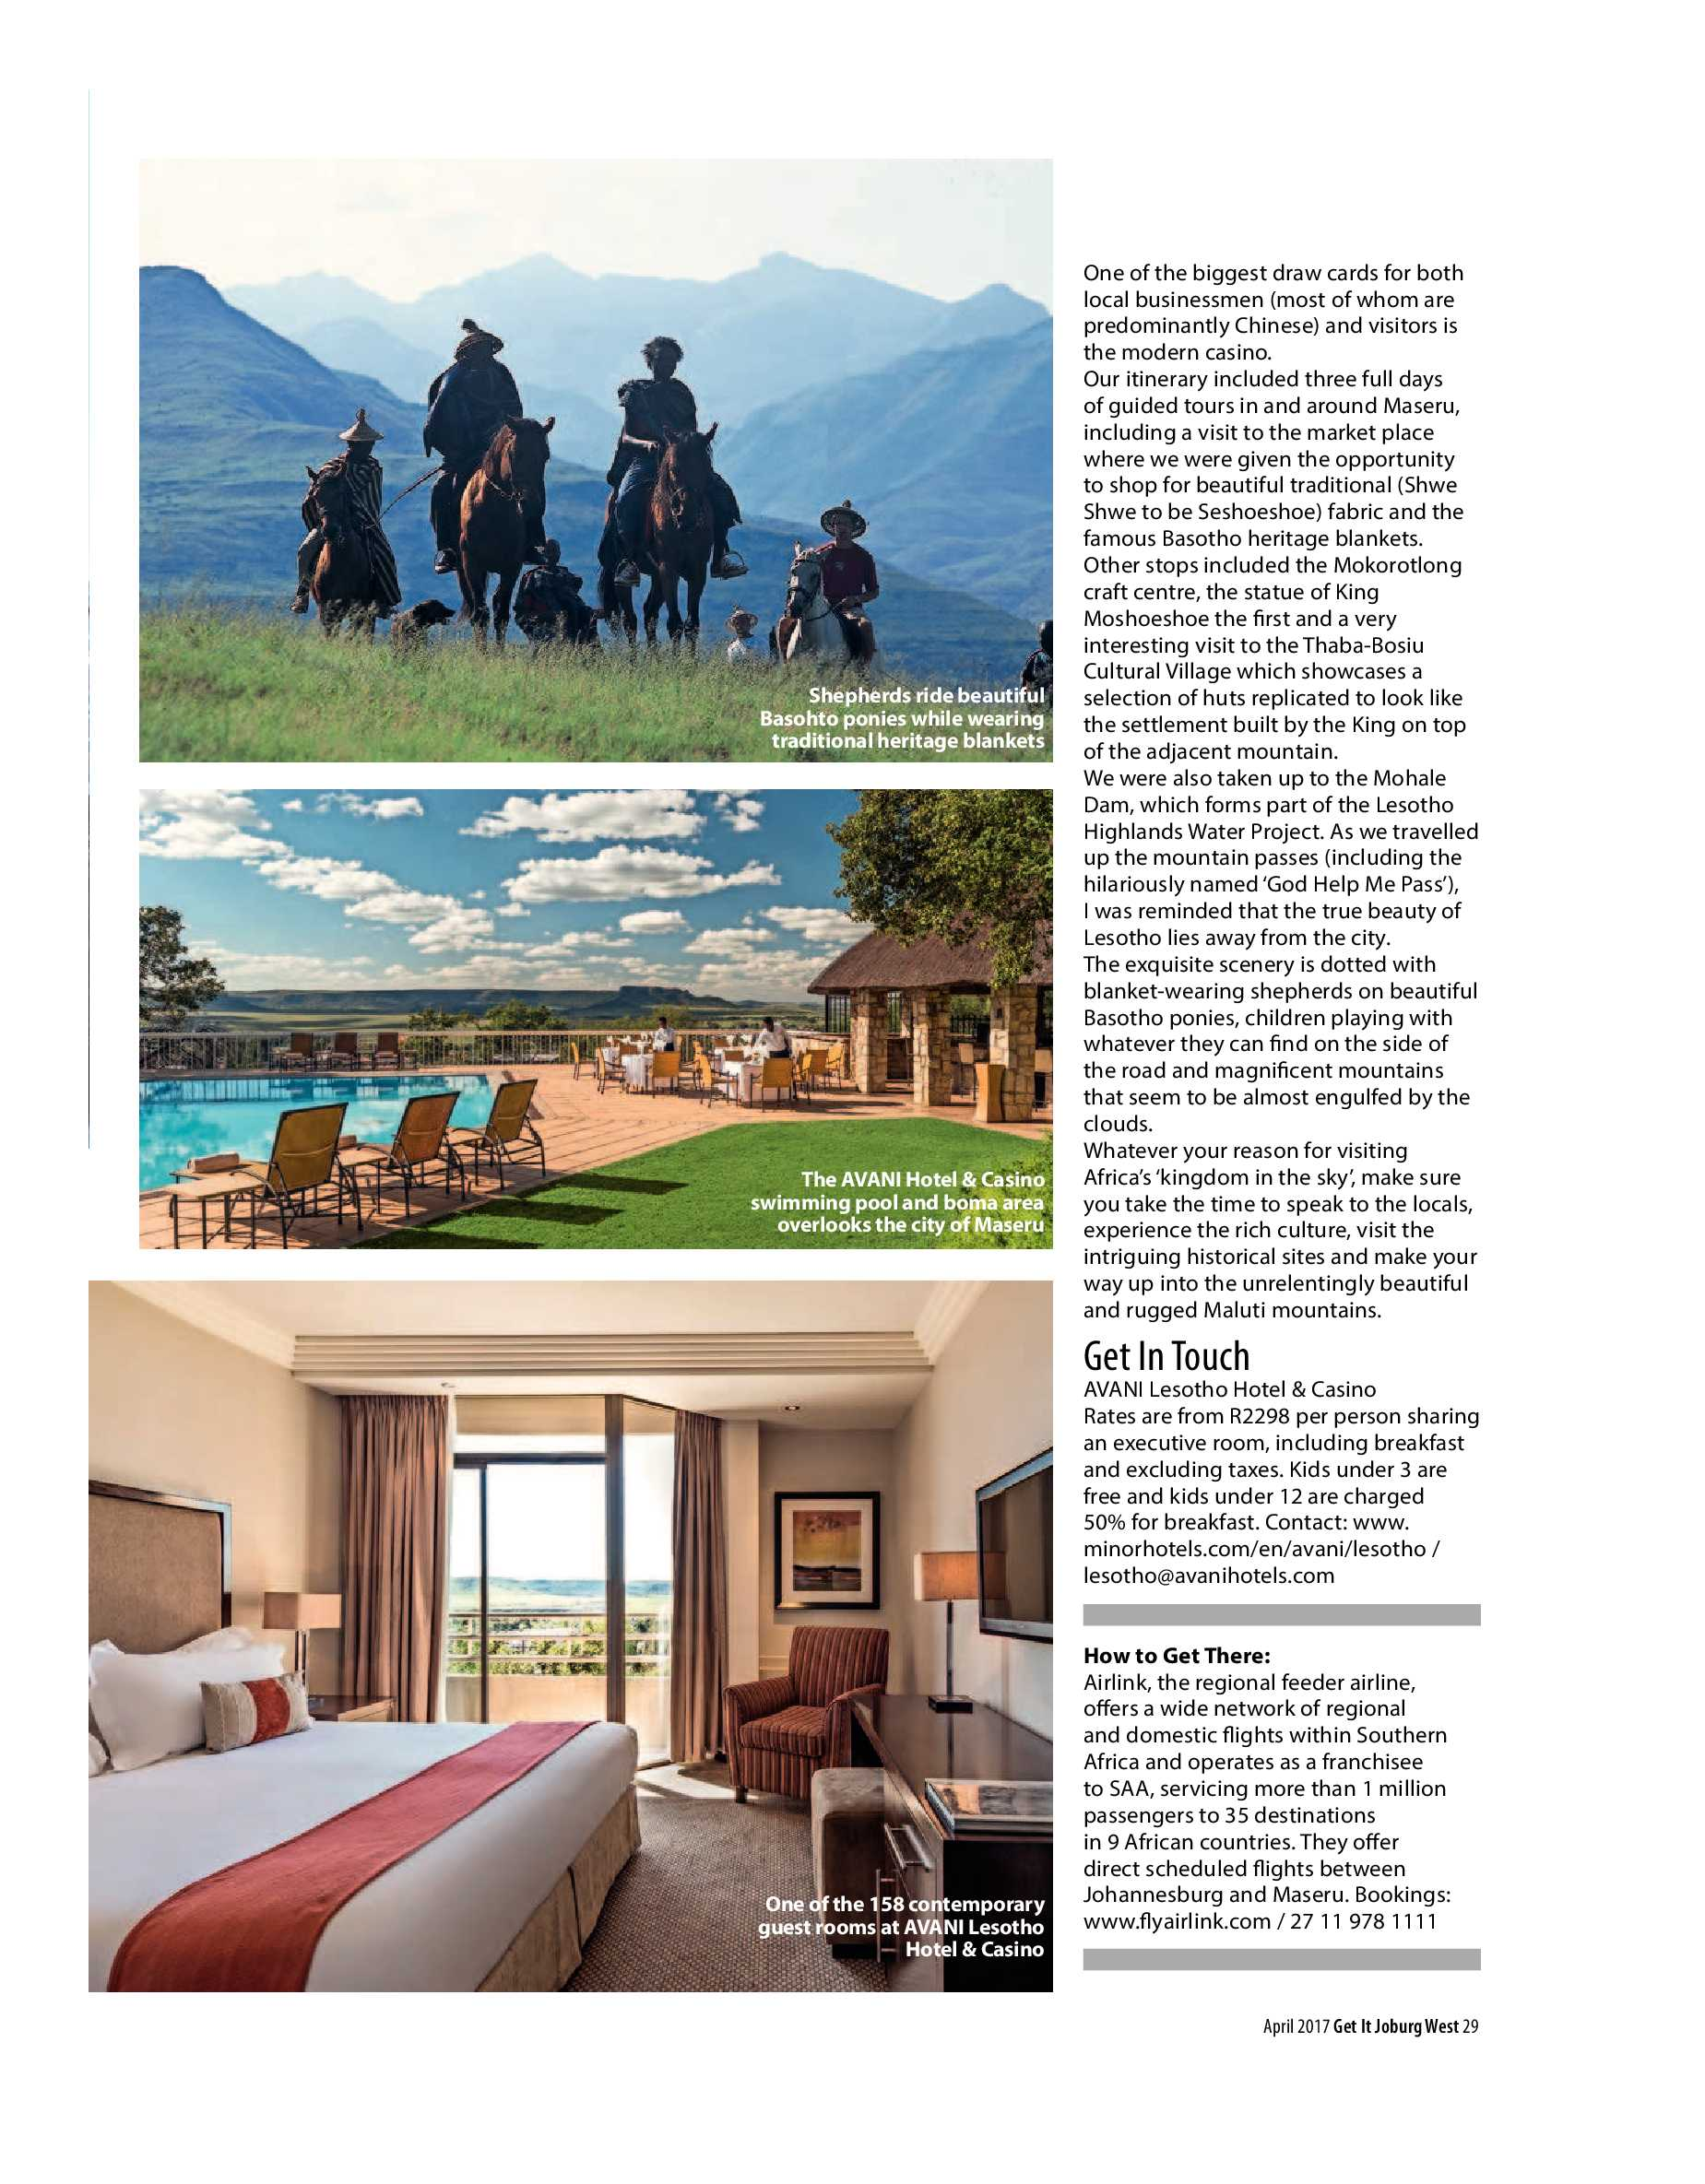 get-jhb-west-april-2017-epapers-page-29